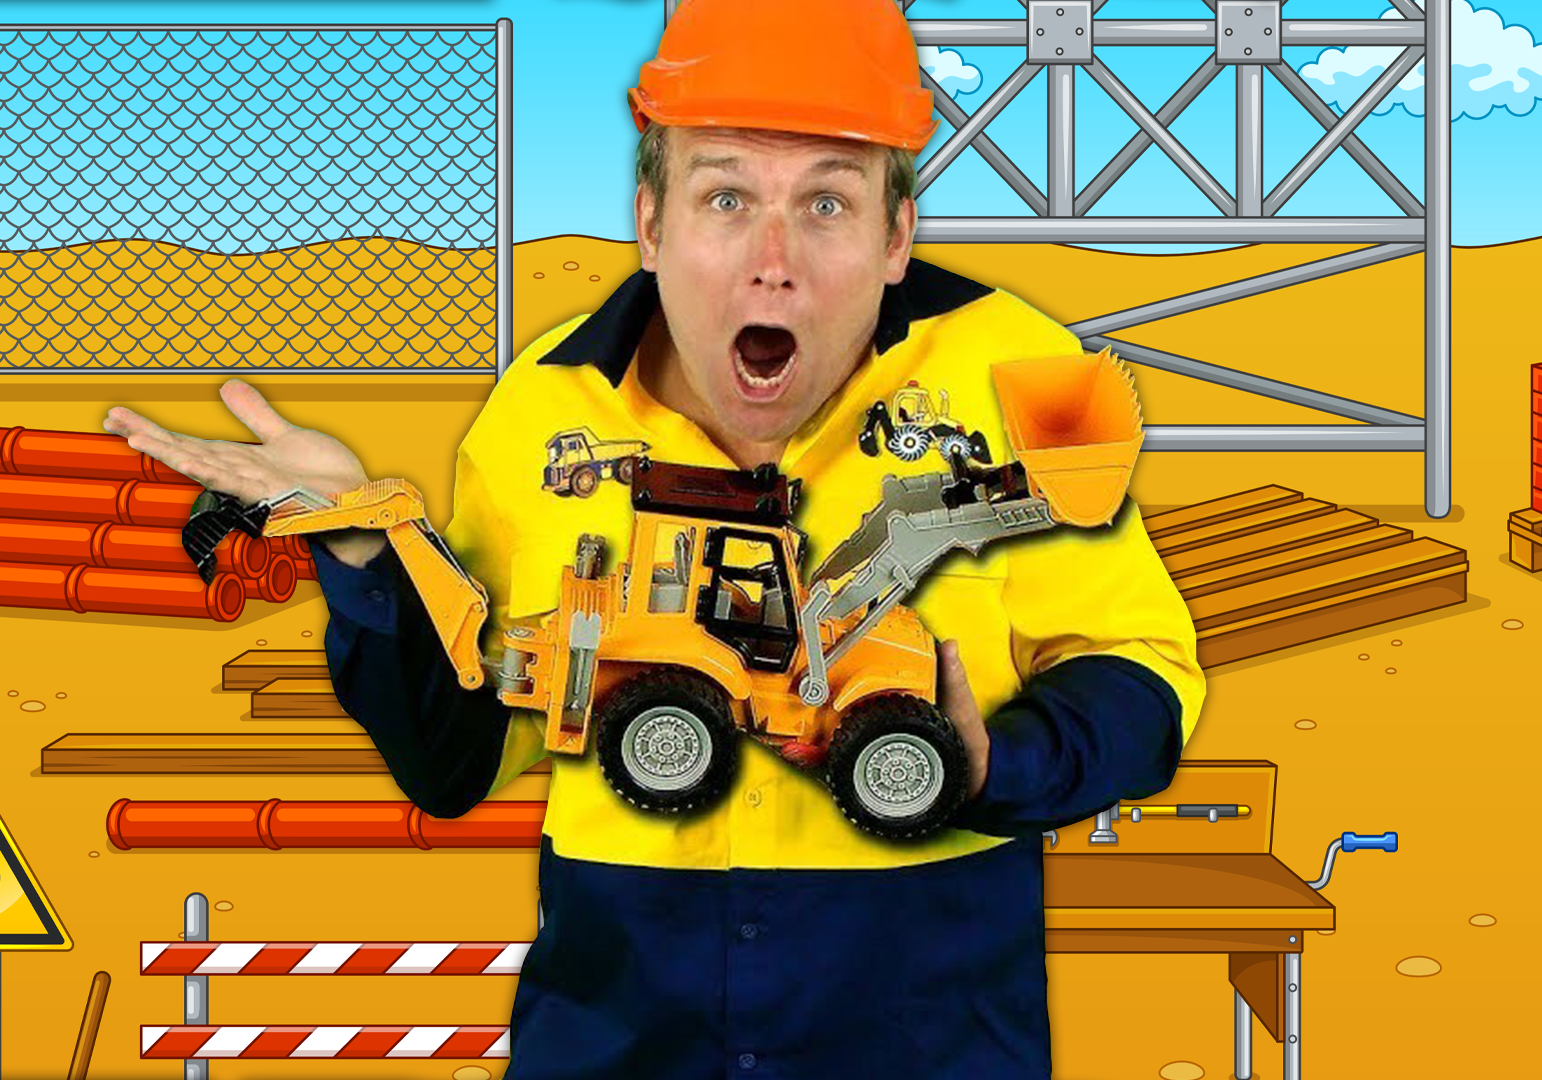 Construction Machines by Bounce Patrol